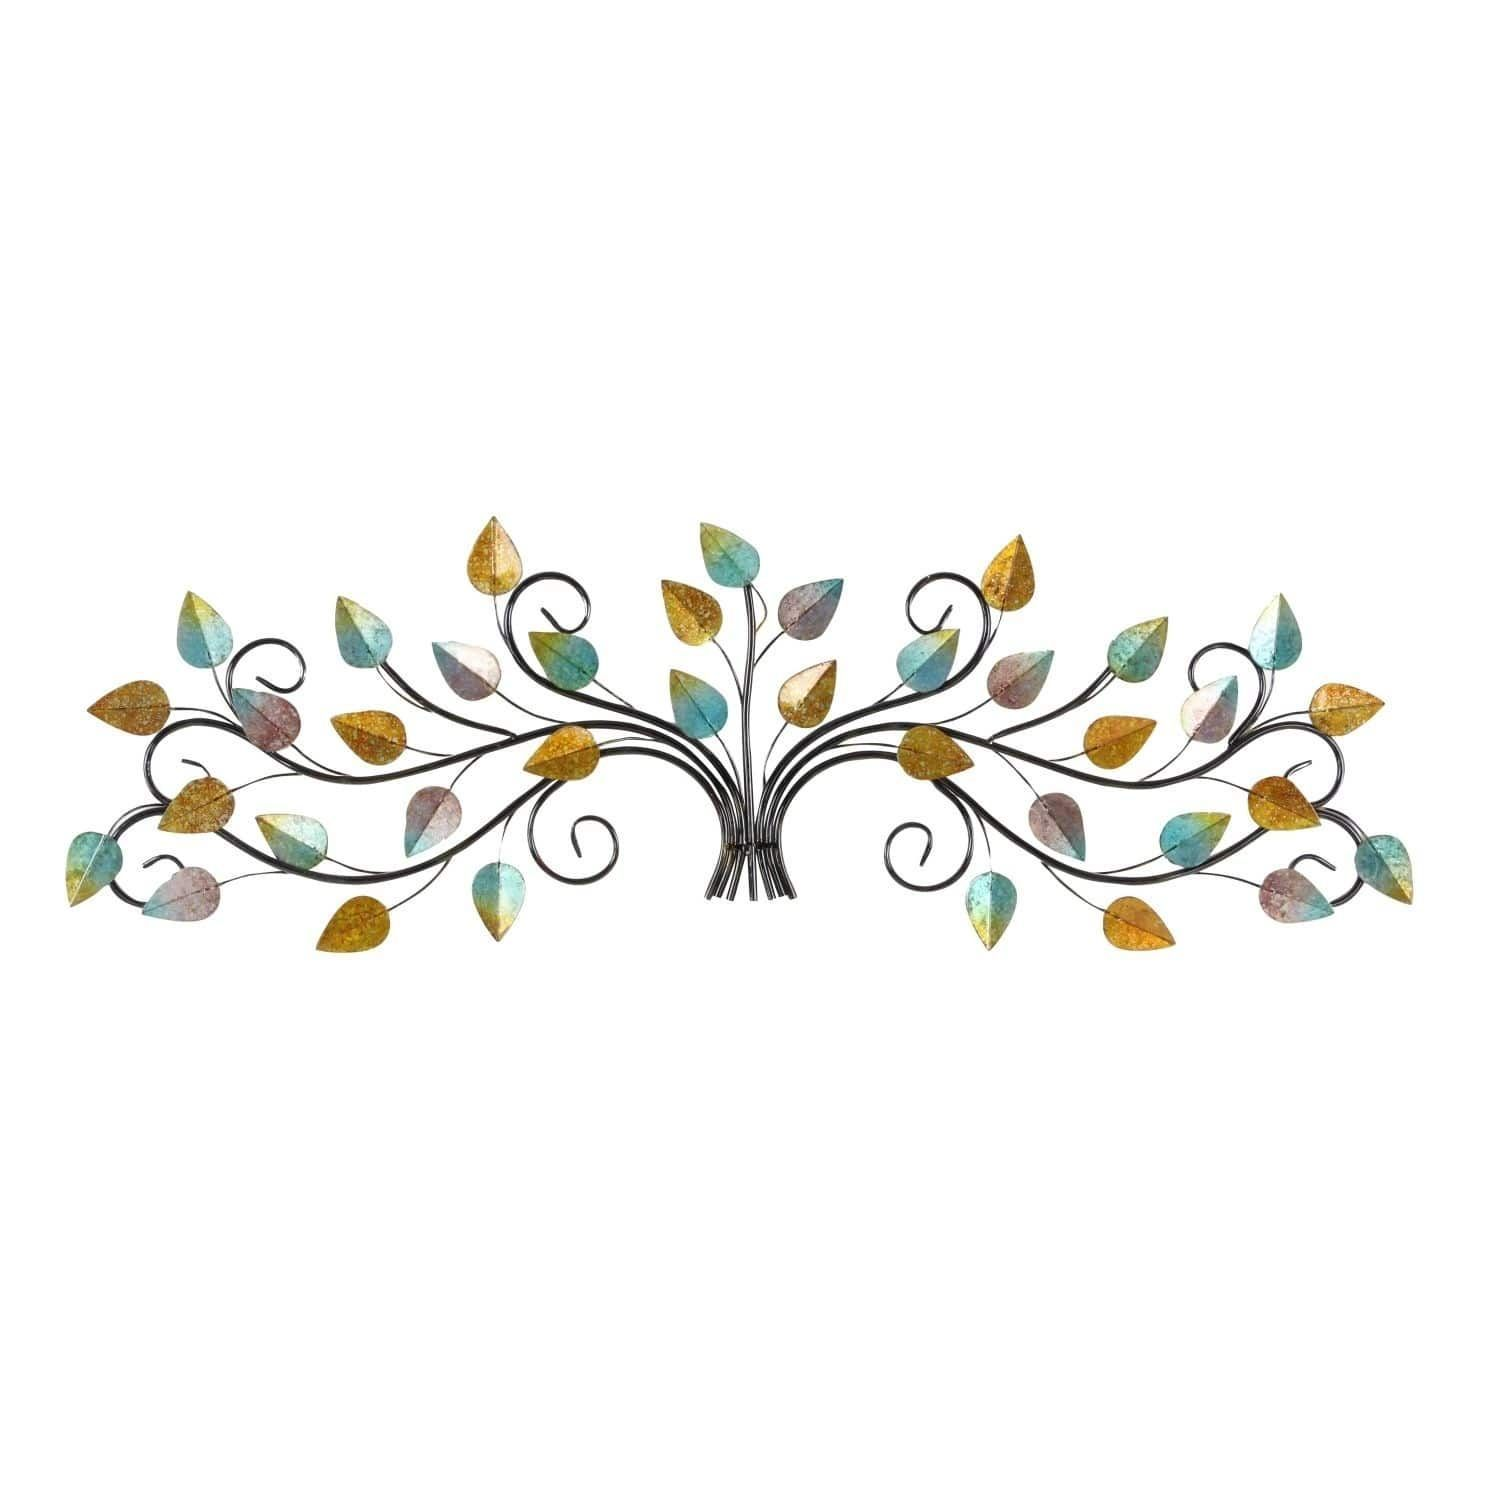 Studio metal leaf wall decor inches wide inches high